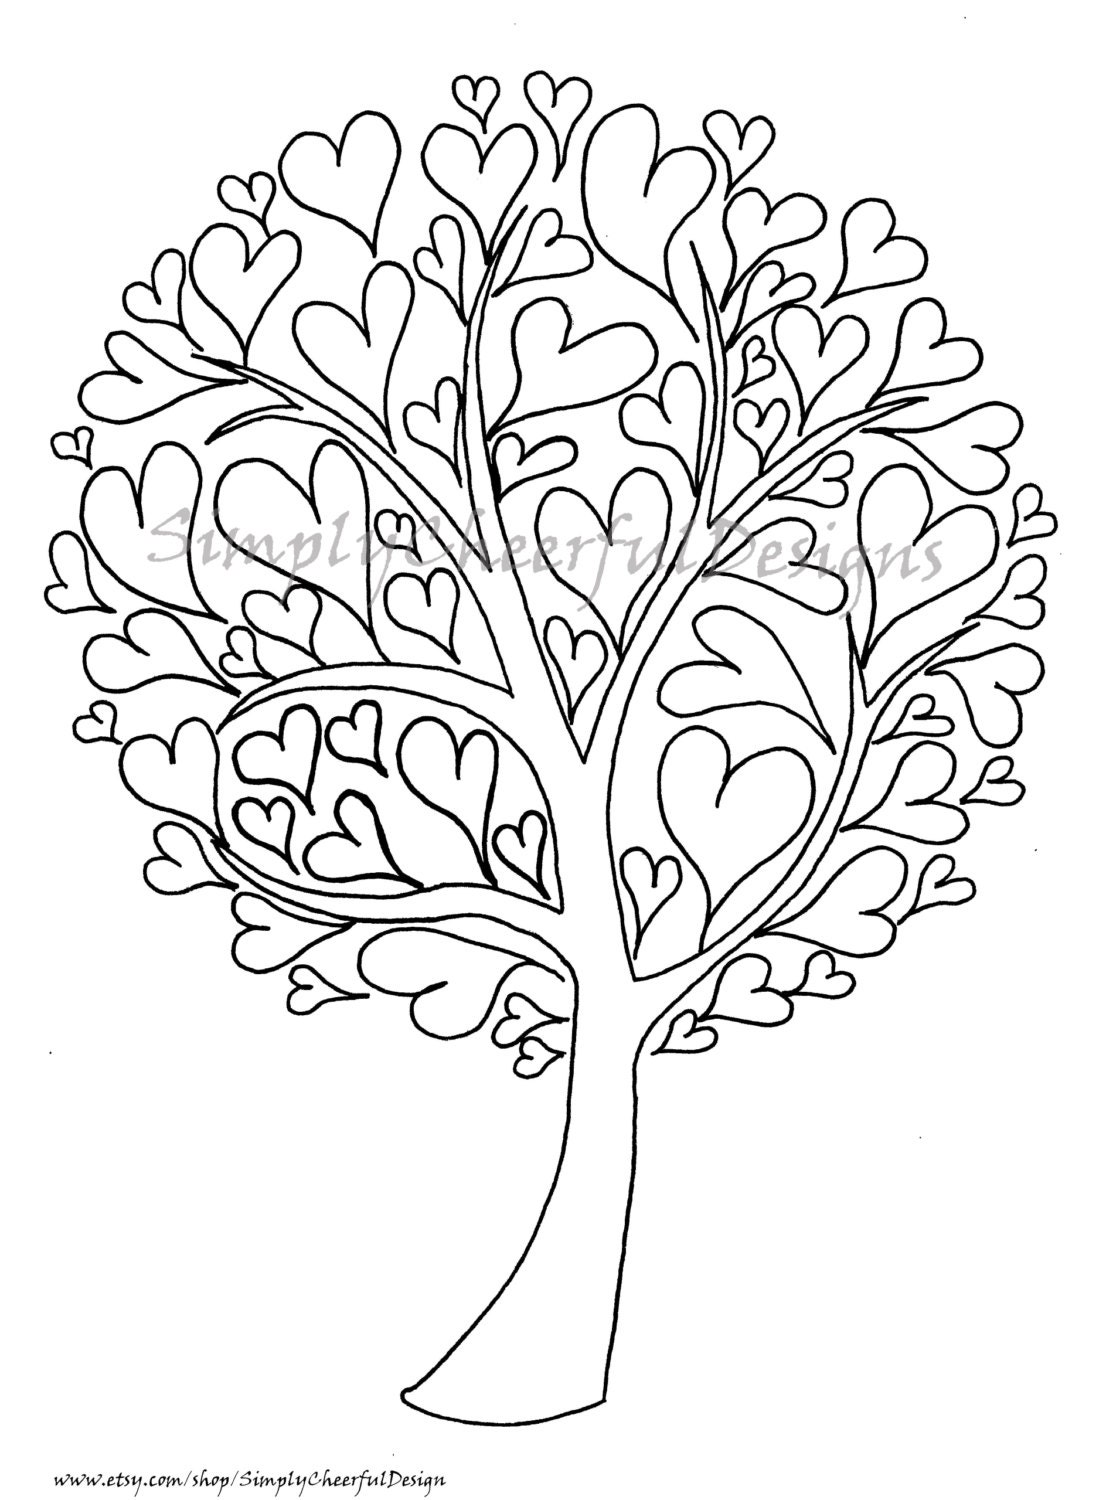 valentine heart tree printable coloring page a coloring page